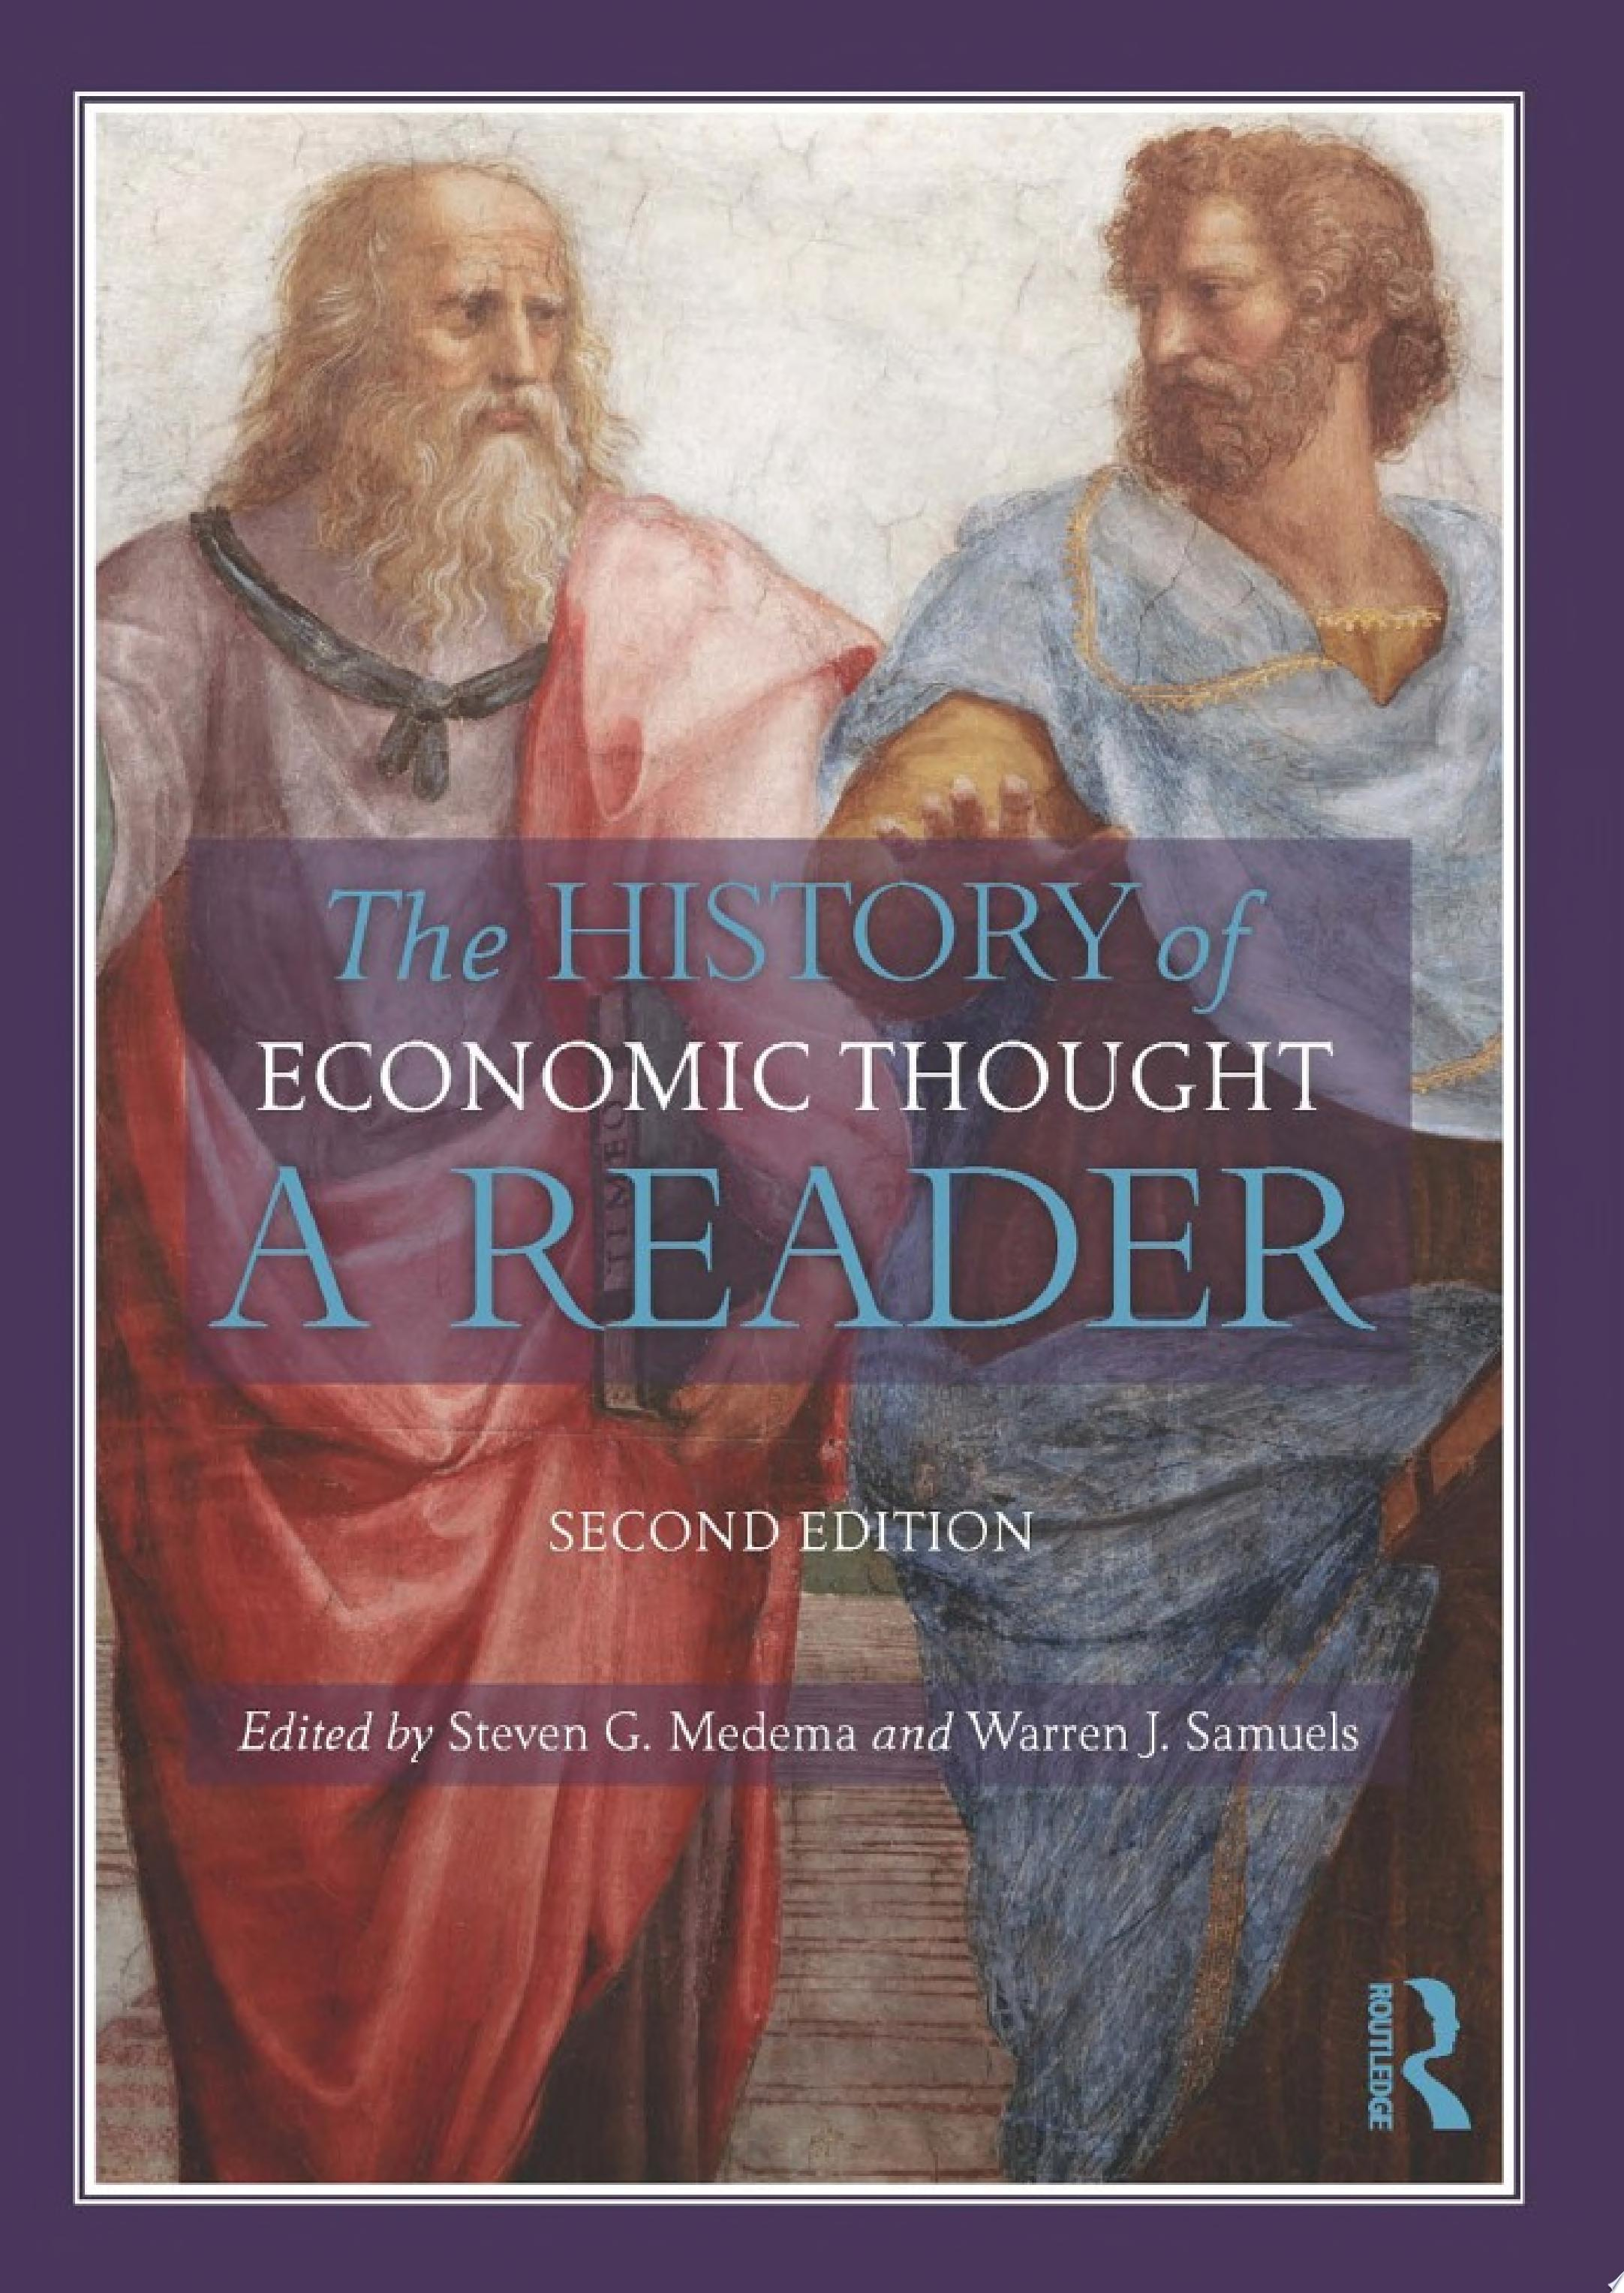 The History of Economic Thought